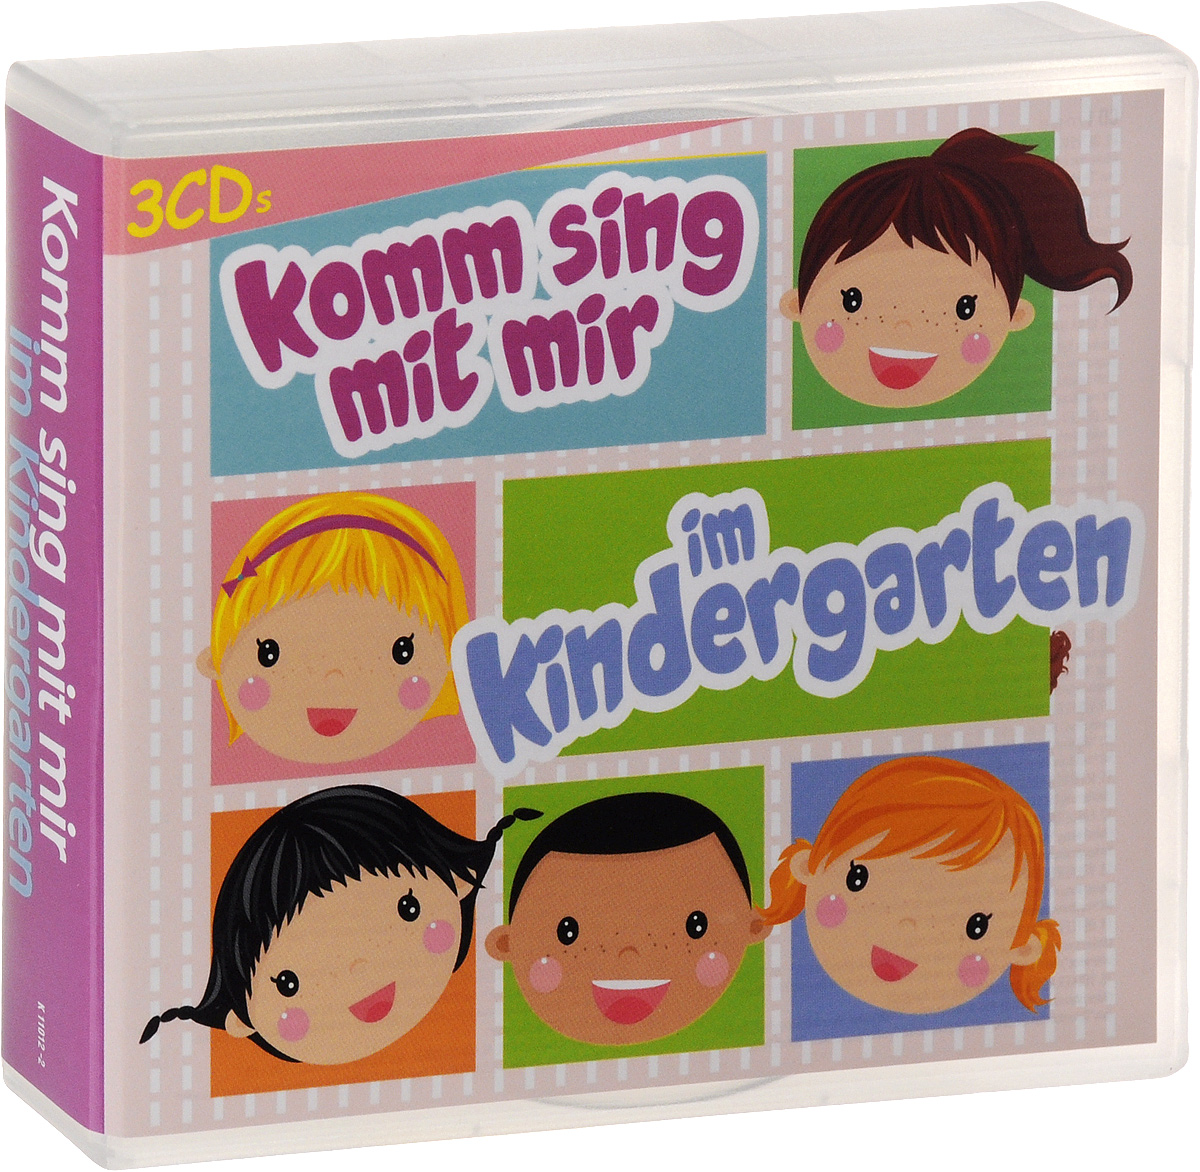 Detlev Jocker,Manfred Kessler,Volker Rosin,Bibi Blocksberg,Klaus Neuhaus,Meggi Sachs,Ulrich Turk,Cinema,`La Luna`,Iris Komm Sing Mit Mir. Im Kindergar (3 CD) manfred kessler detlev jocker fredrik vahle dietlind grabe klaus neuhaus volker rosin klaus w hoffmann die friedrichshainer spatzen suppi huhn die kinderkonige доминик элберг bibi blocksberg nena die rainbowkids kids party hits 10 cd